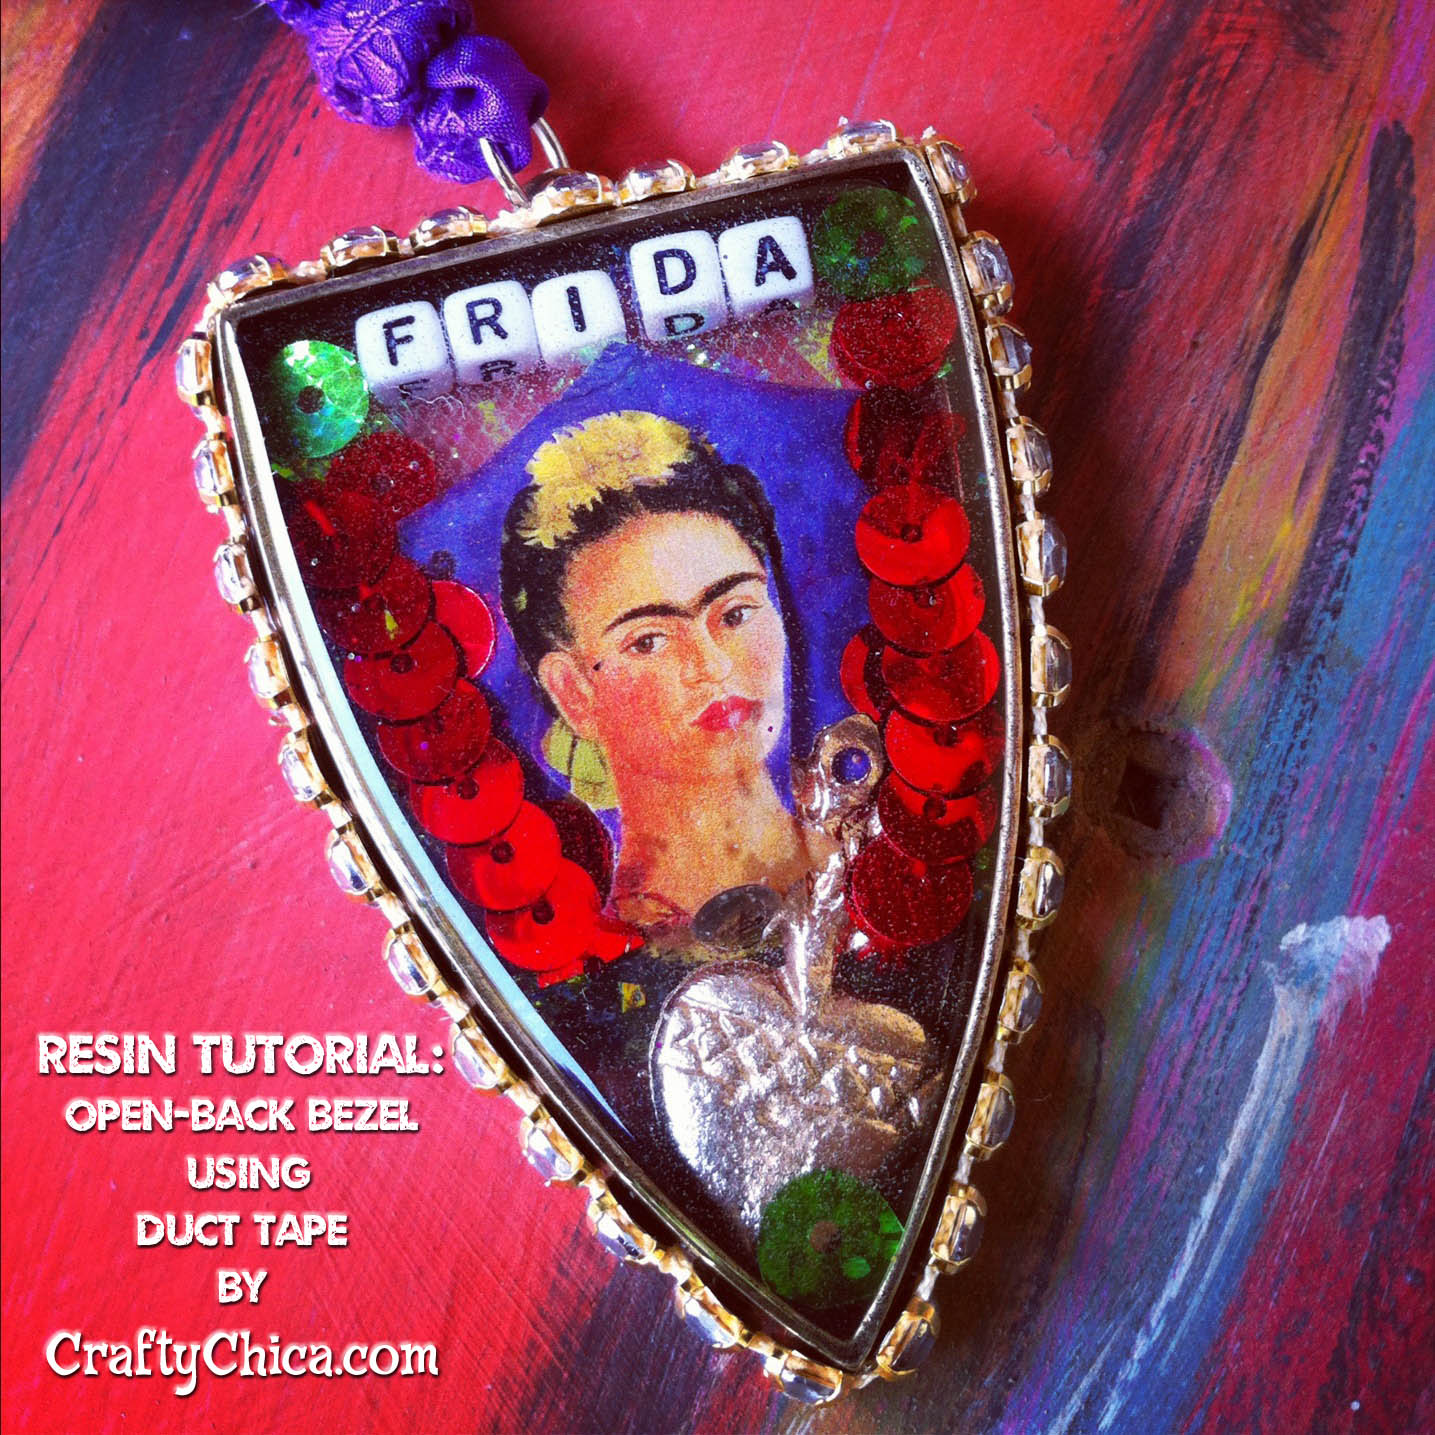 Resin pendant tutorial - open backed, CraftyChica.com